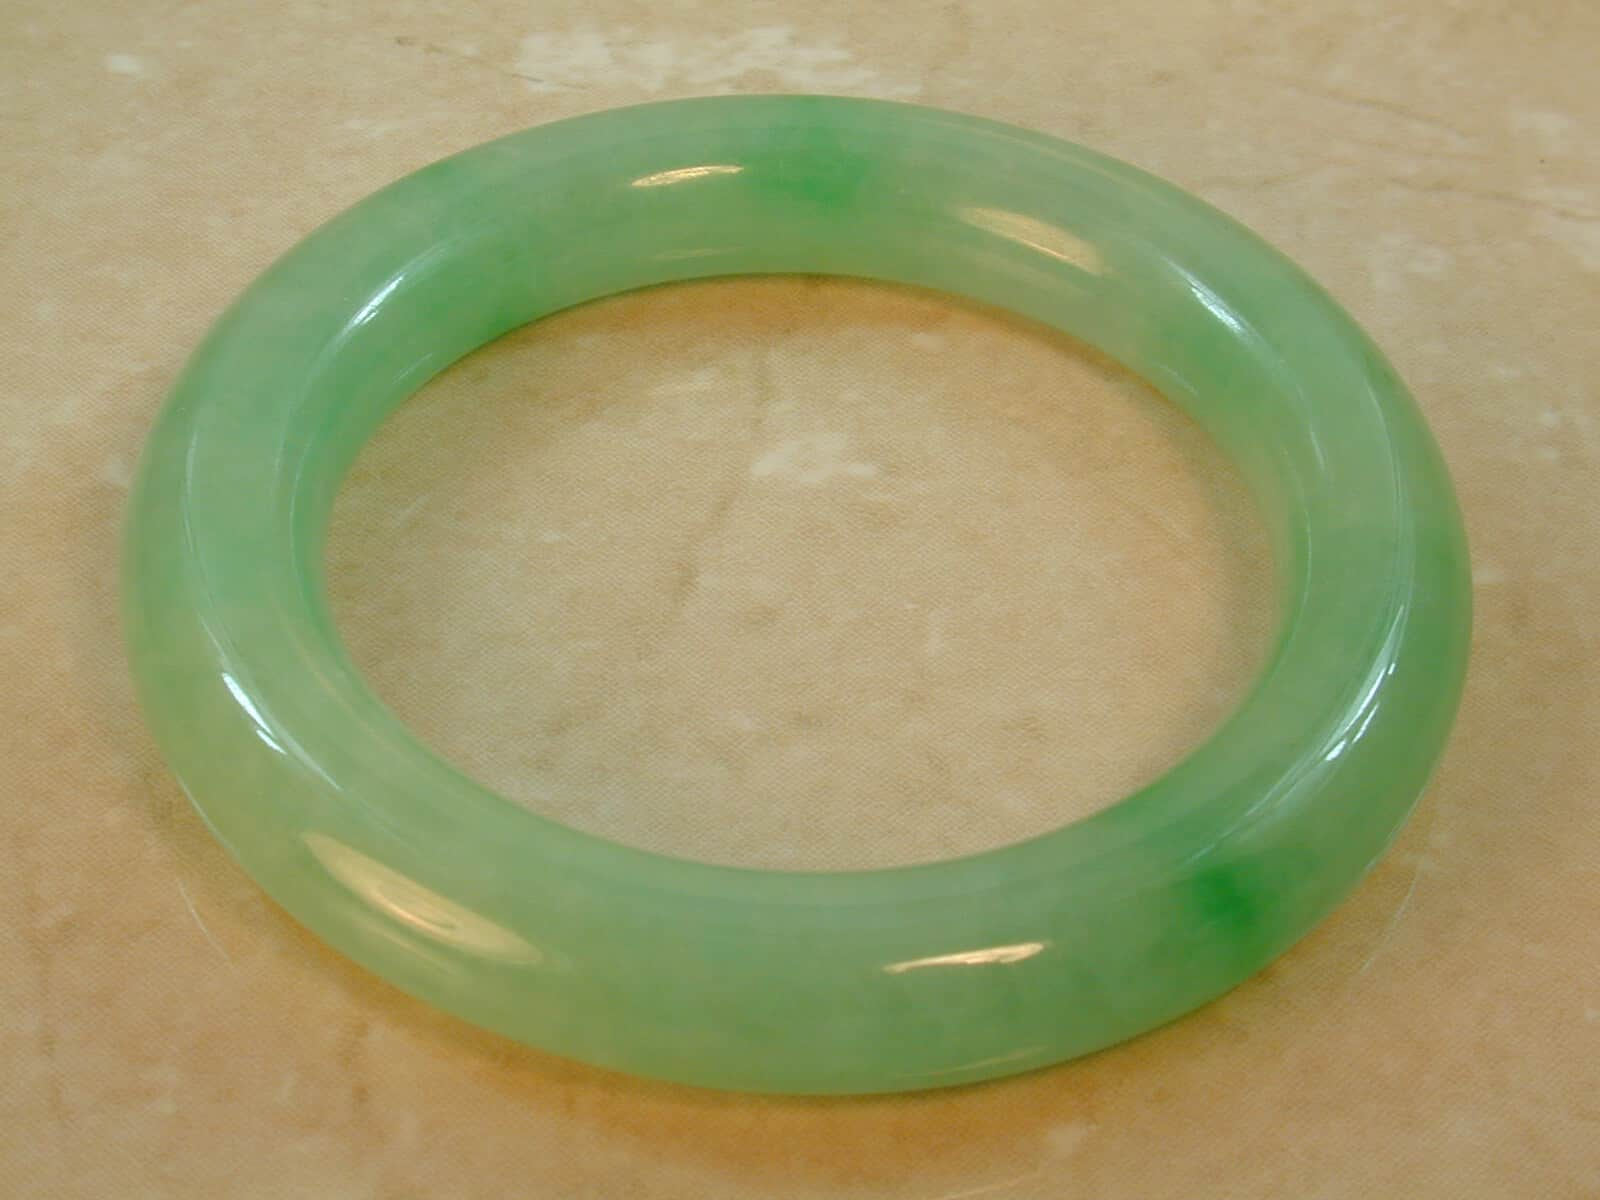 stone tumble jade product phantom bracelets amber green genuine detail bracelet buy on